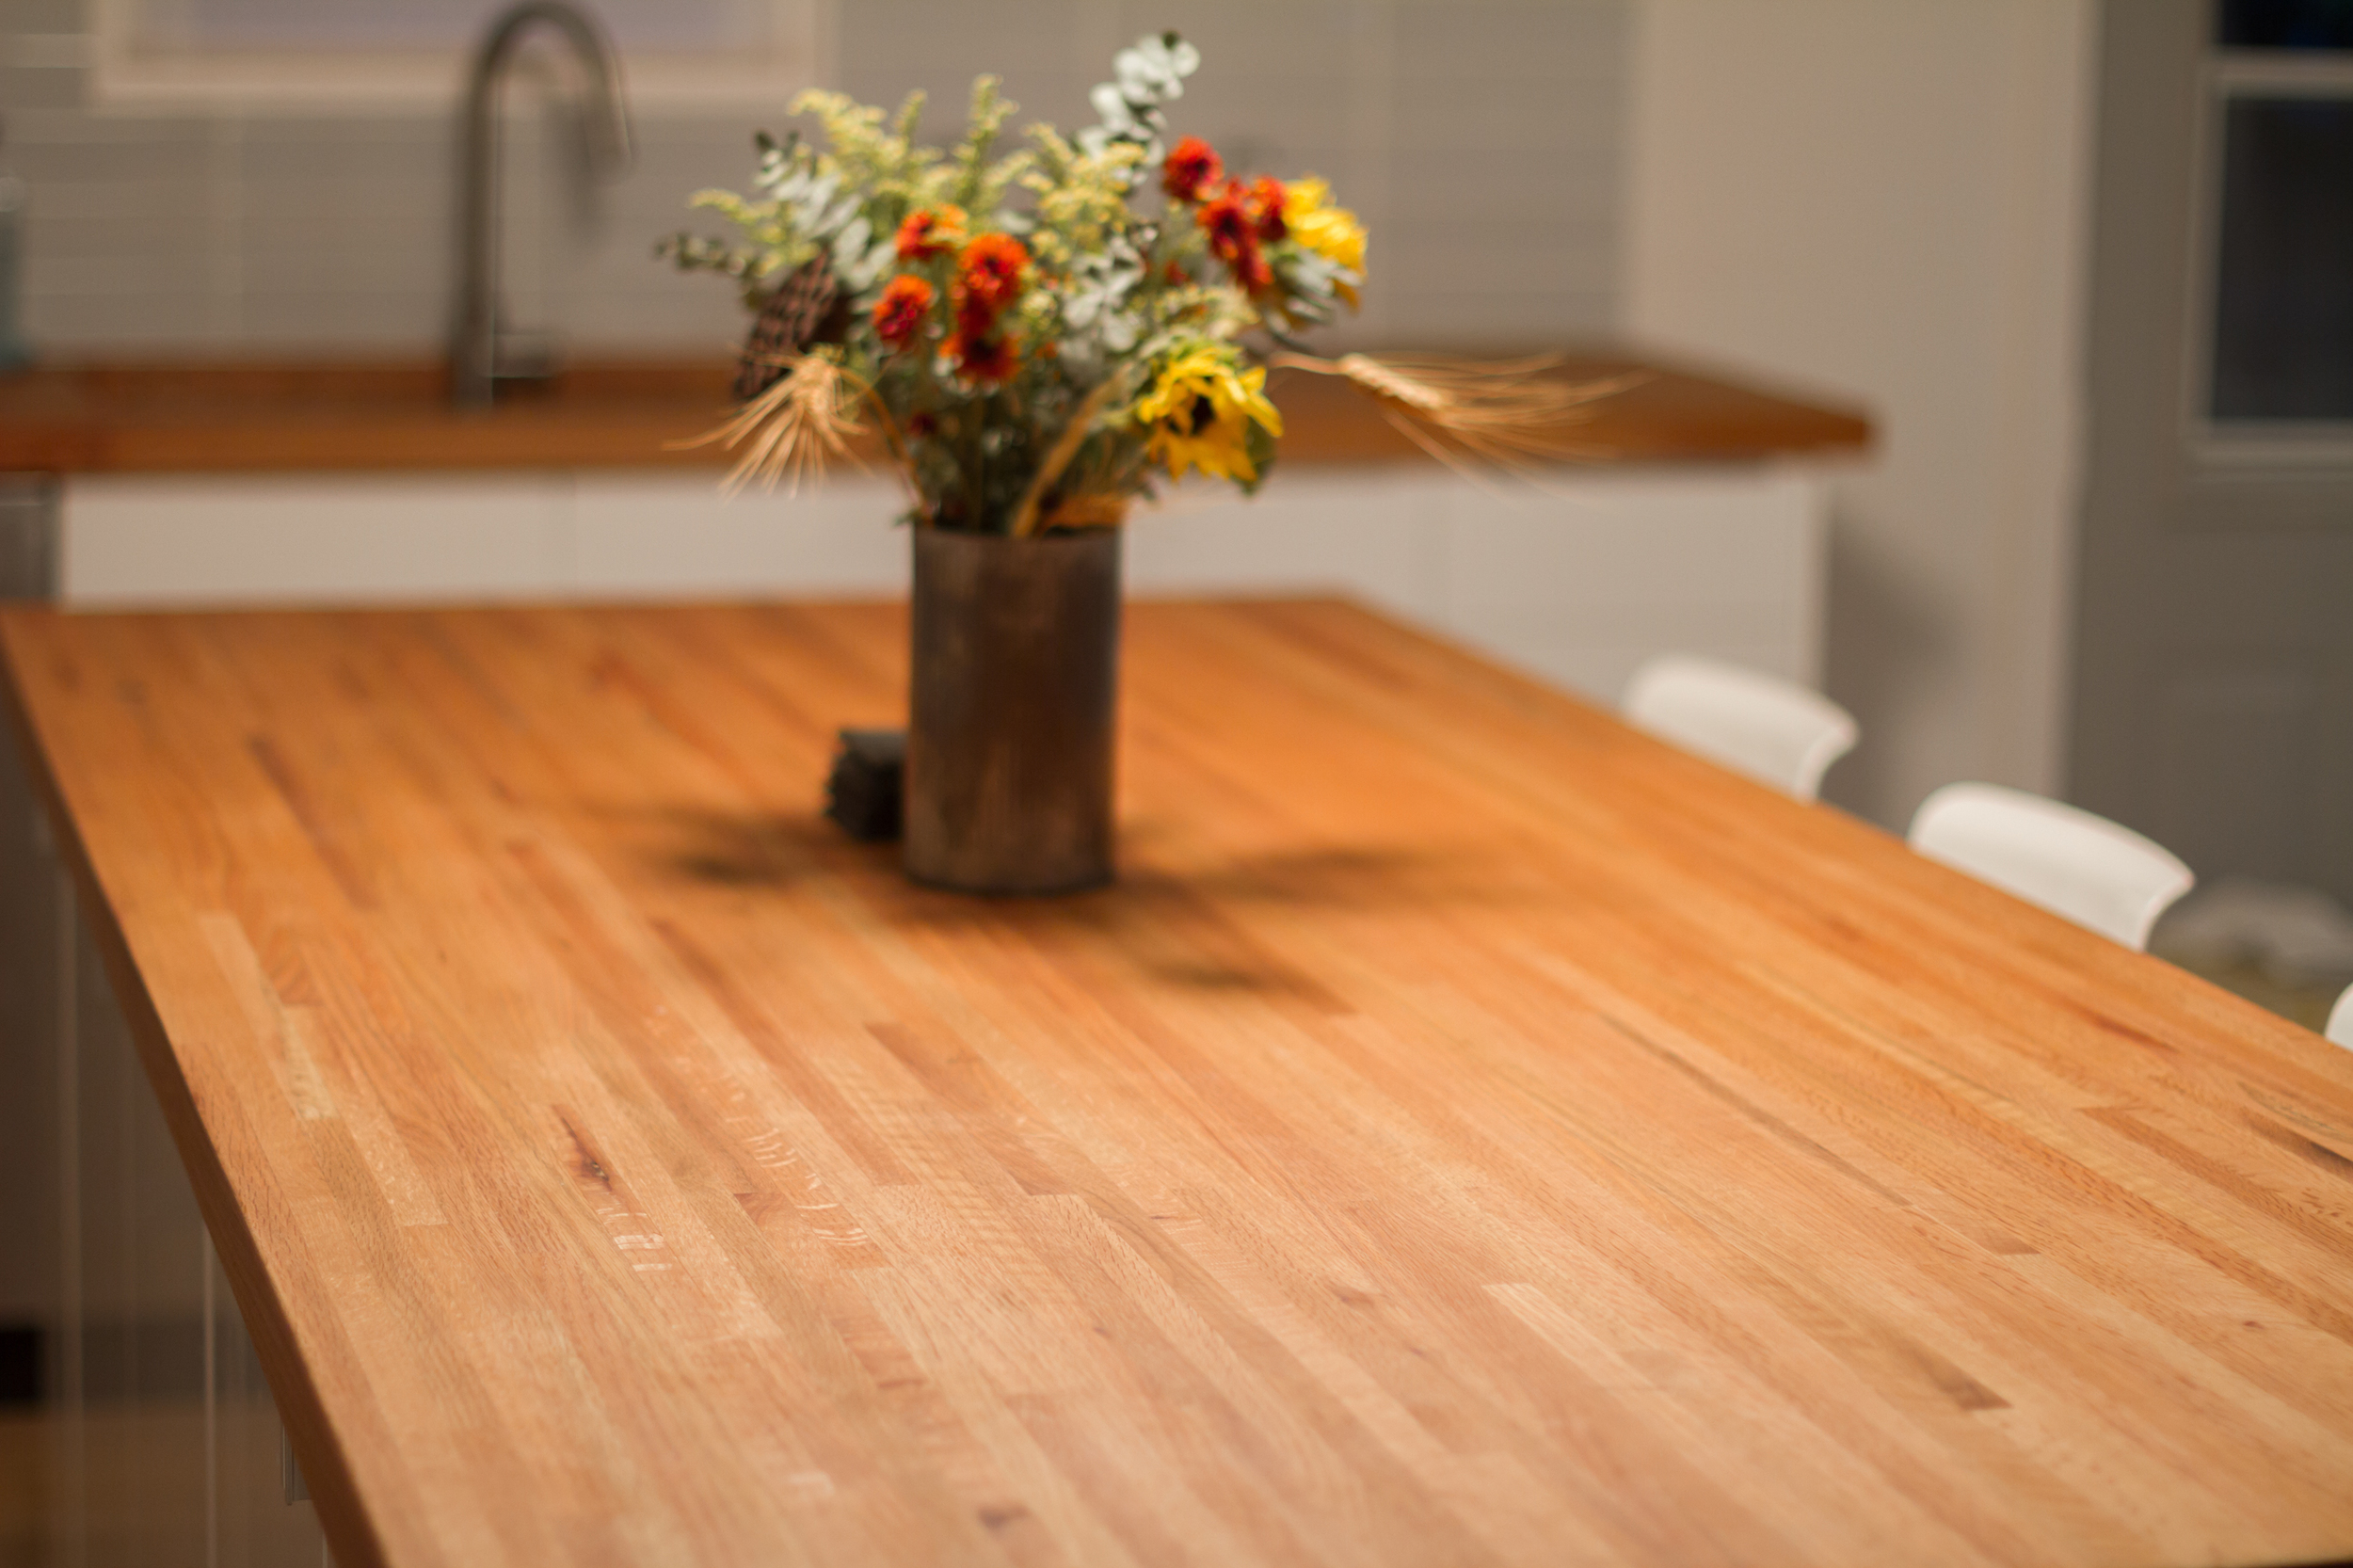 DIY Butcher Block Countertops Made From Leftover Flooring — WORK